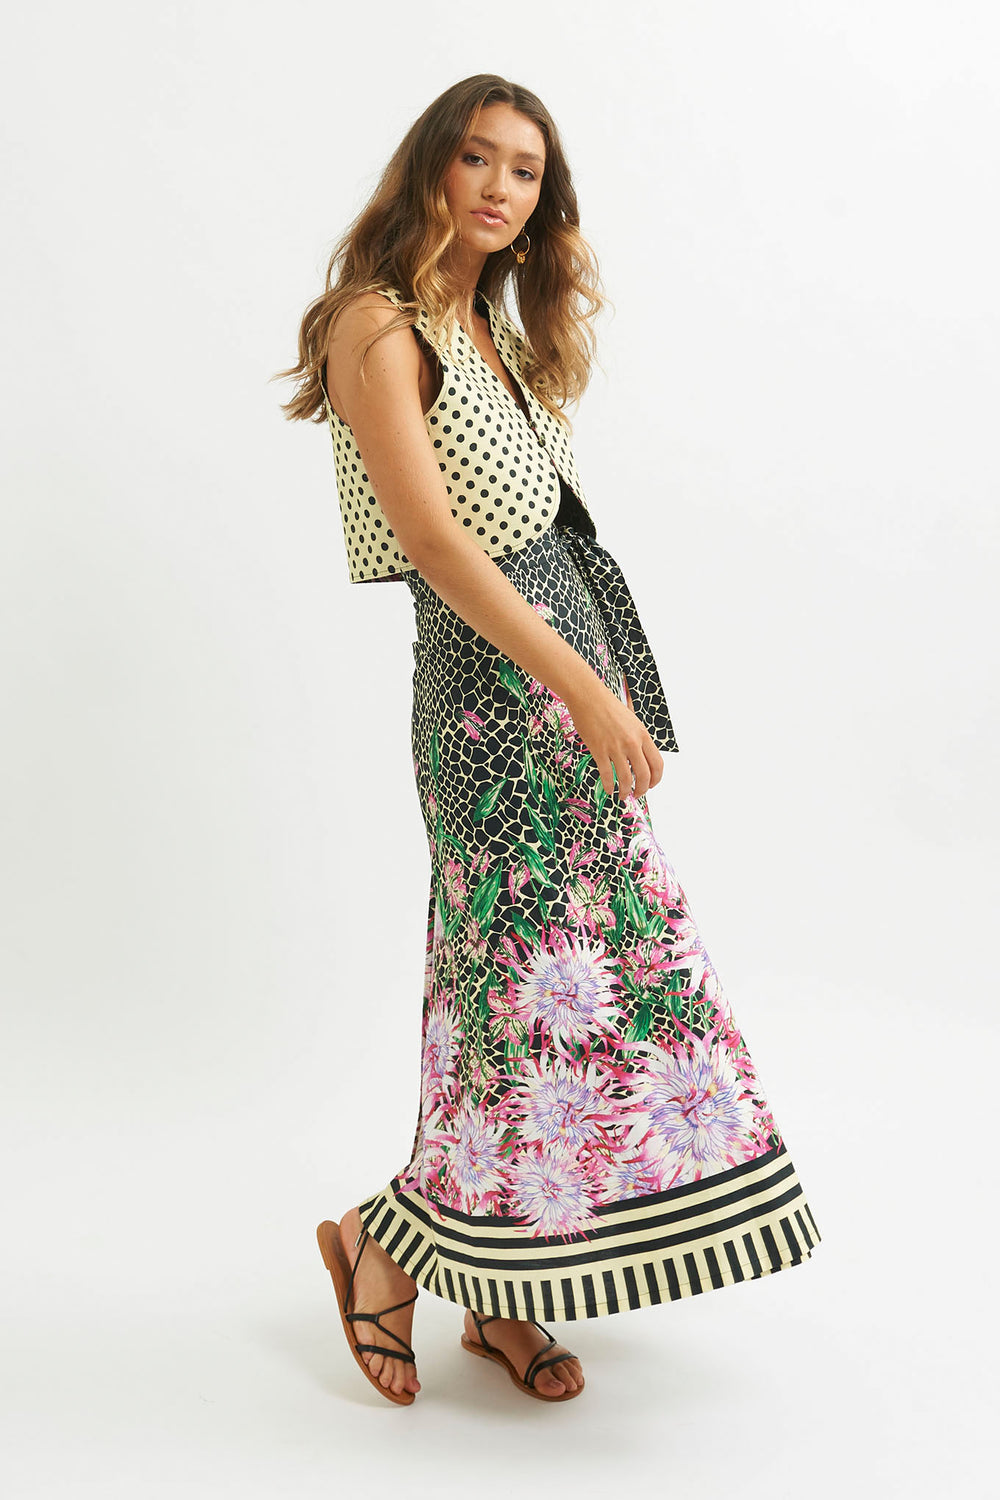 Erizo Wrap Maxi Skirt - shopsigal